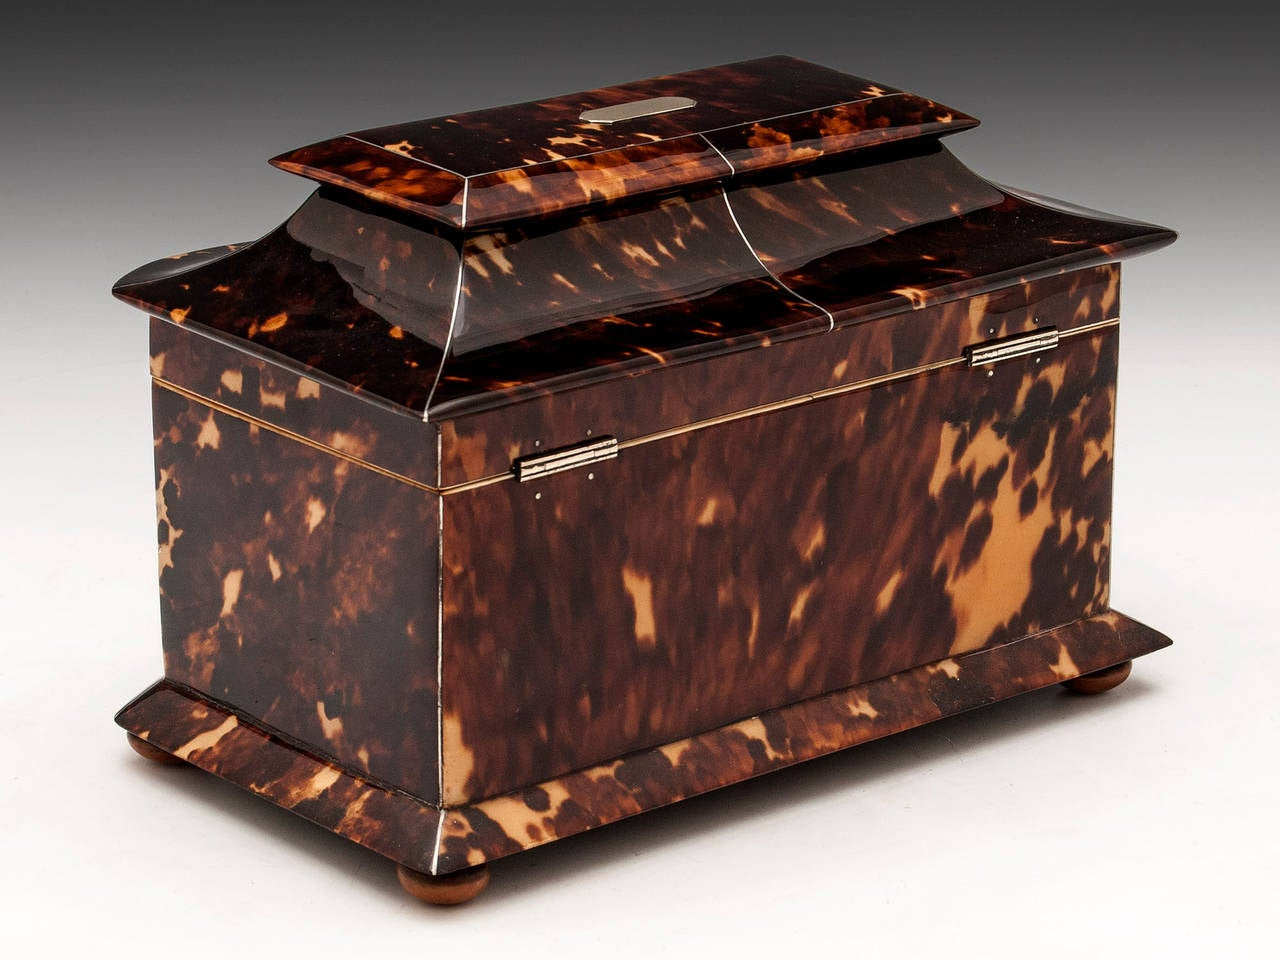 Bone Regency Tortoiseshell Tea Caddy For Sale